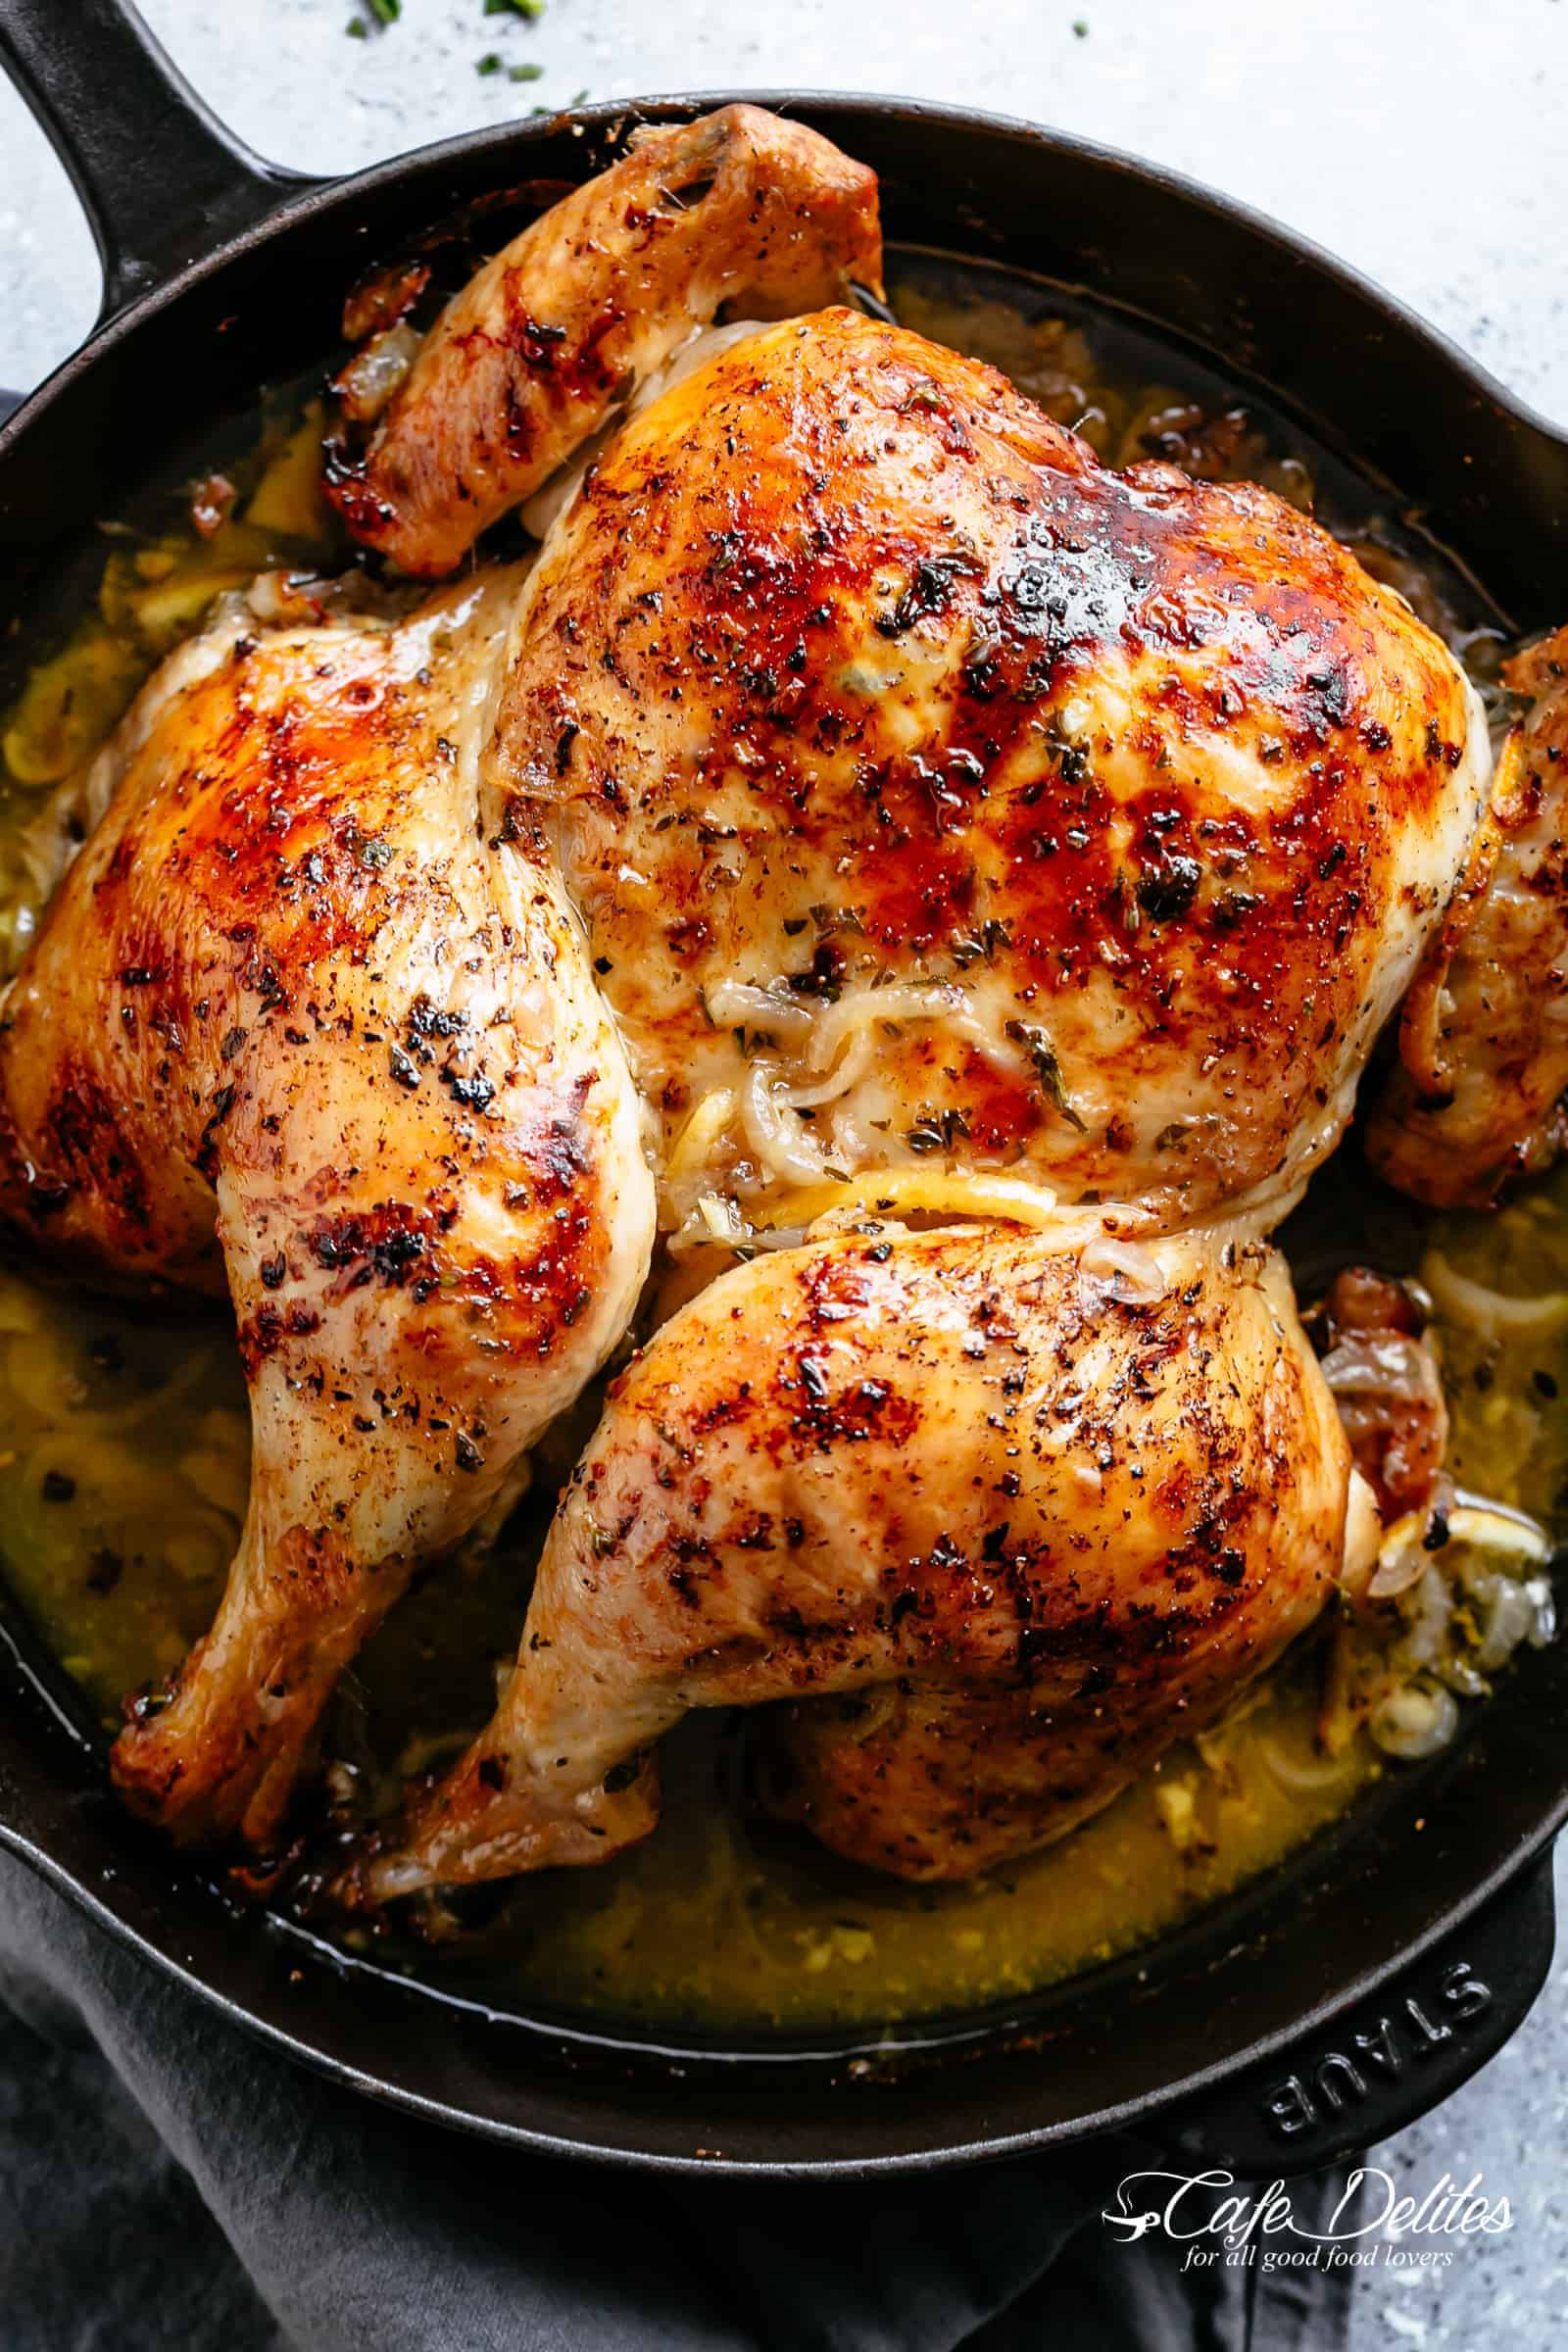 Tender and juicy Lemon Garlic Roast Chicken with crispy, rich and flavourful skin, so much flavour and easy to find ingredients! Garlic, onions, lemons, olive oil, fresh herbs and a splash of white wine (optional) make this one amazing roast chicken recipe! You'll be so surprised at how moist the meat is! | cafedelites.com